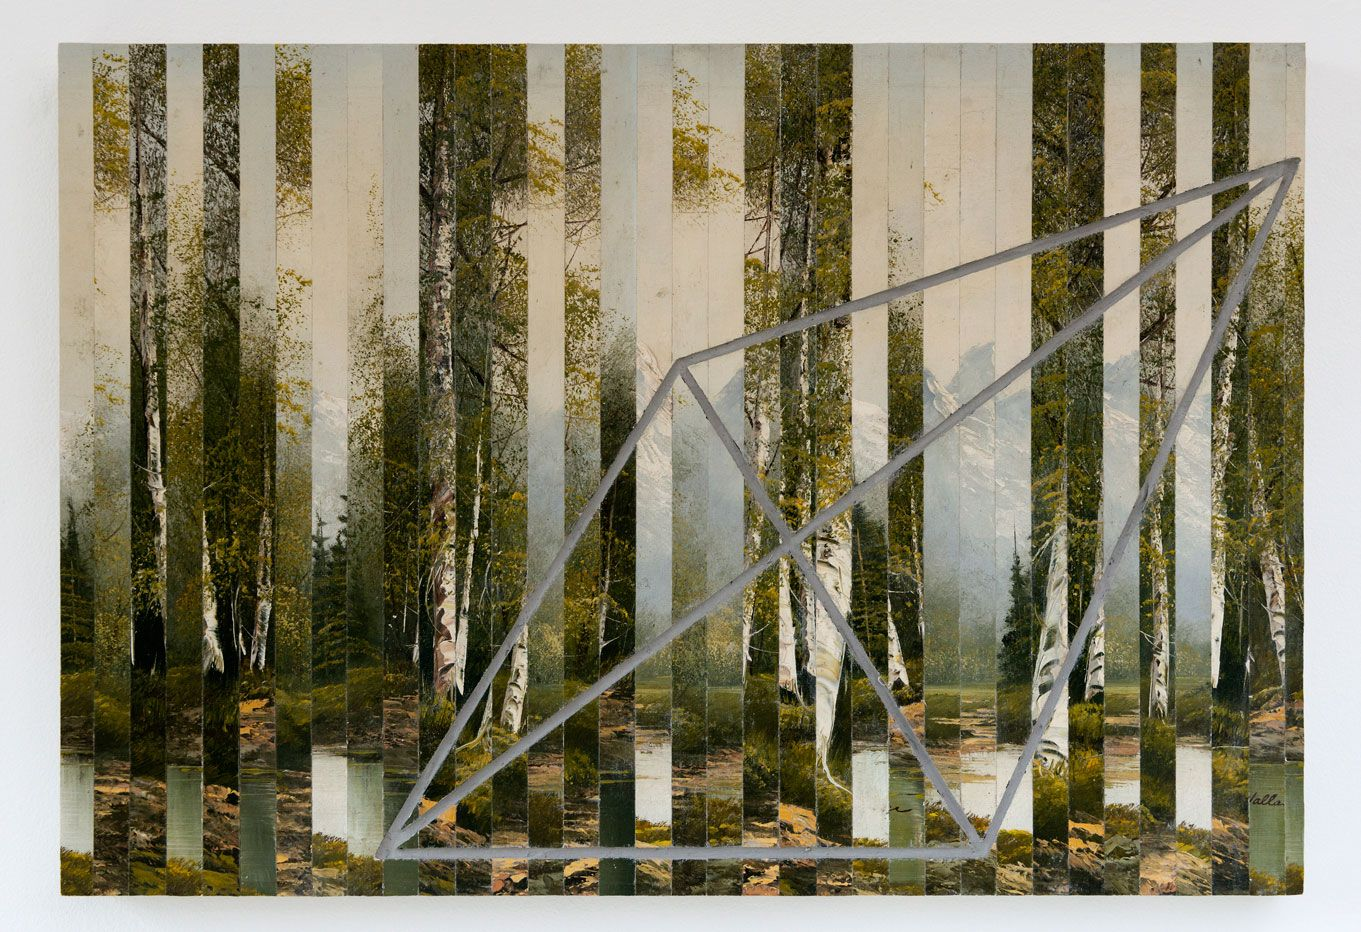 The Wilderness, 2015, 50 x 80 cm oil on canvas, concrete, wood